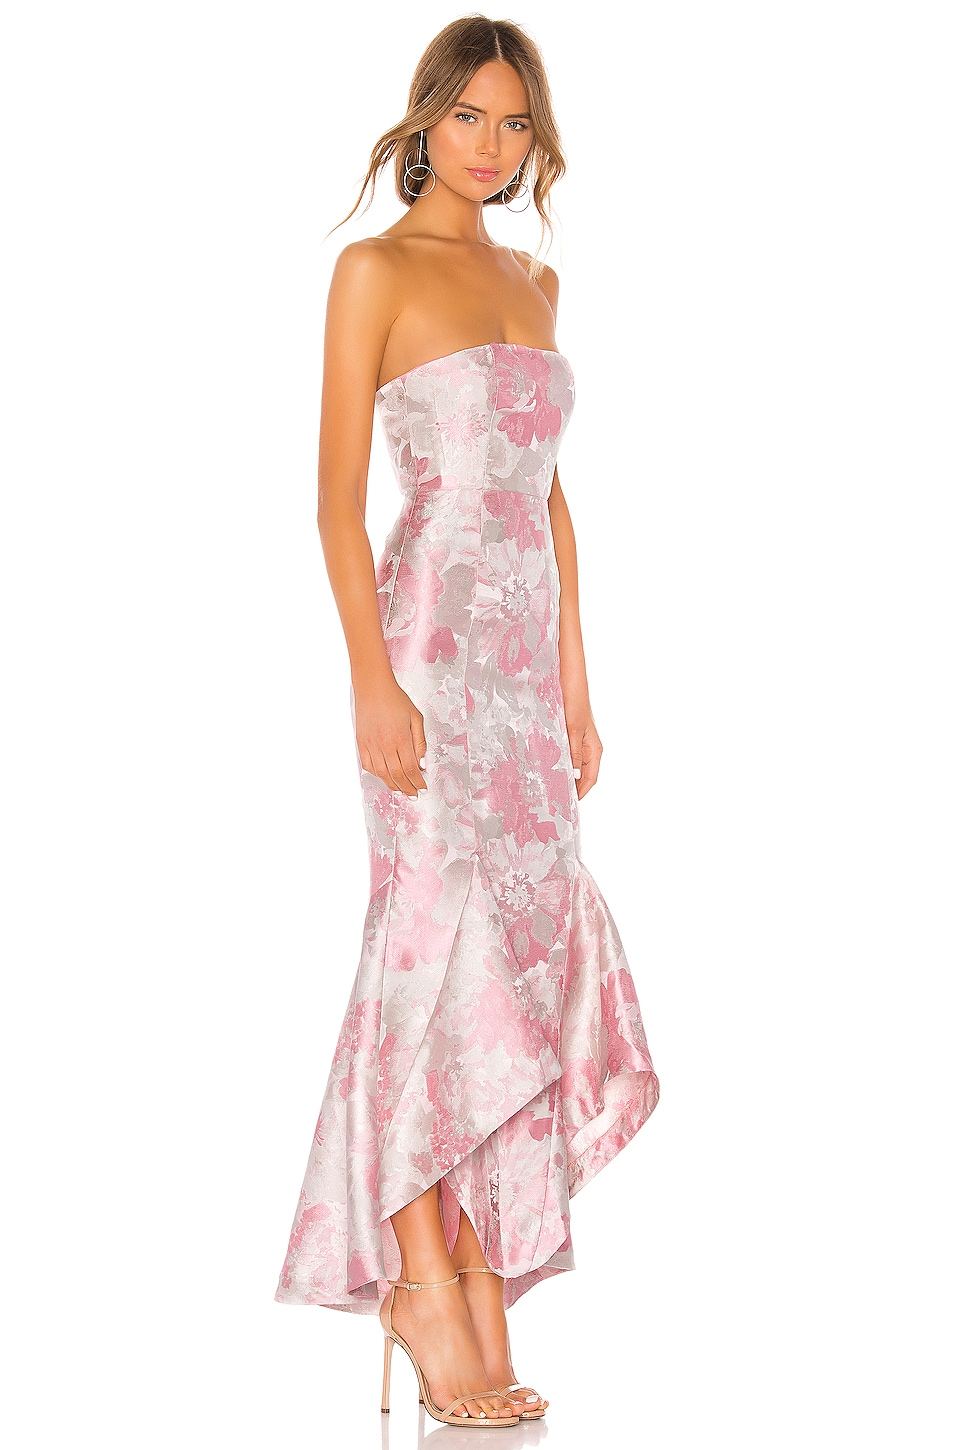 Urgonia Gown, view 2, click to view large image.